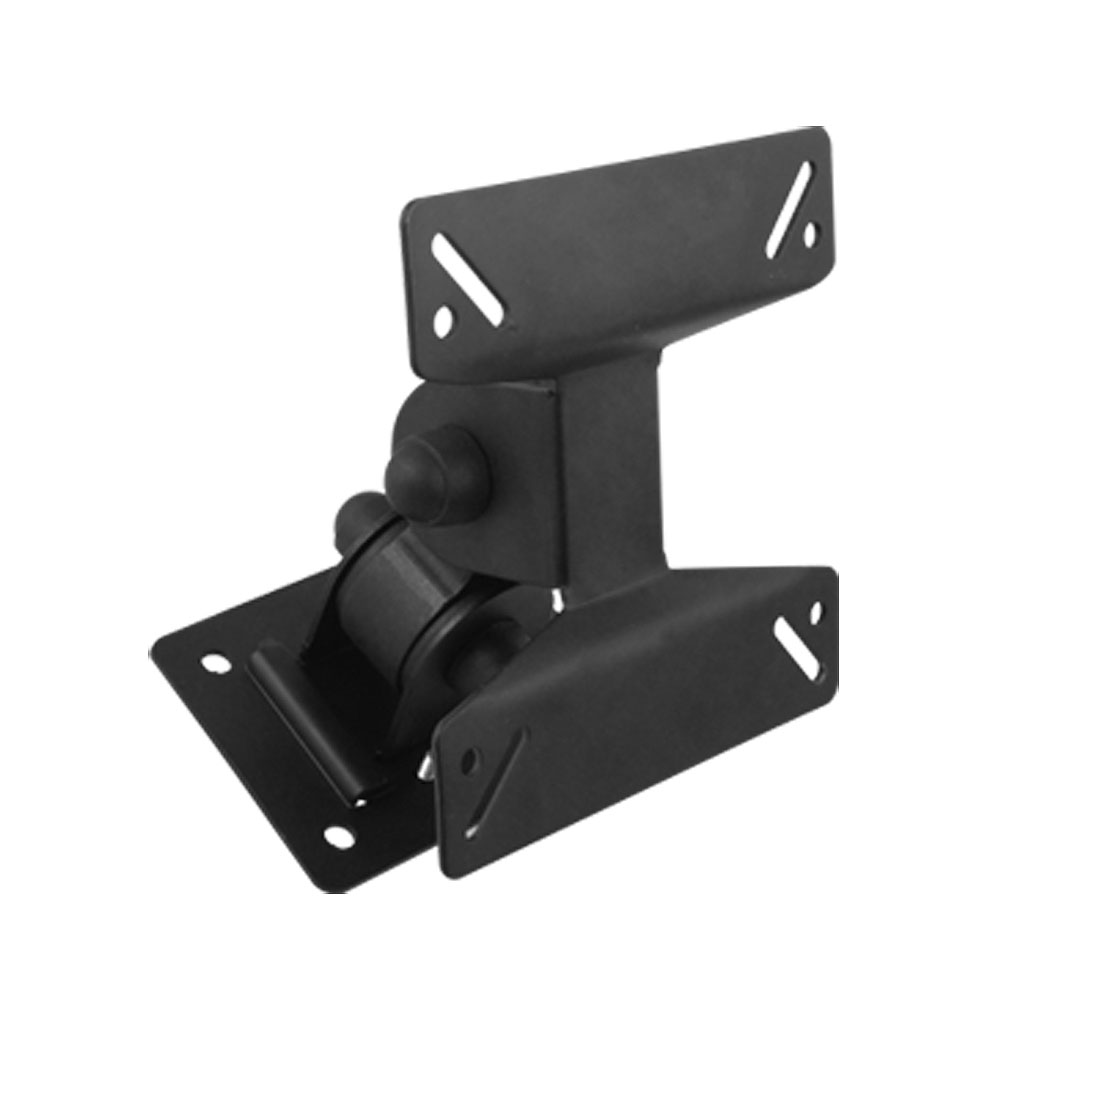 LCD TV Monitor Arm Wall Mount Bracket Metal Stand